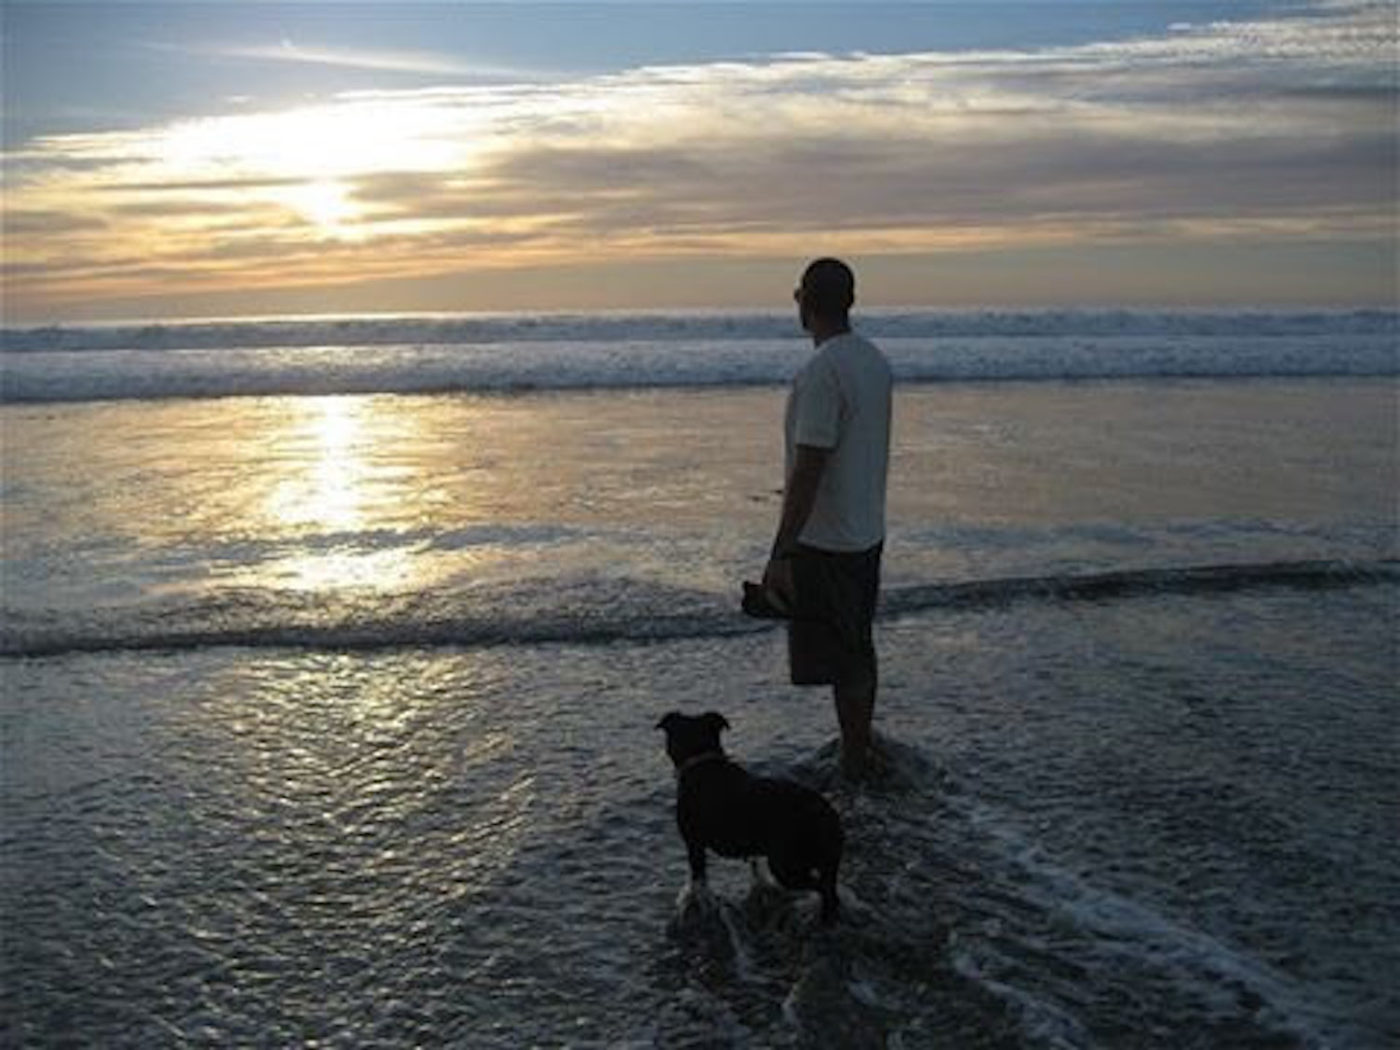 #dogatbeach, #sandiegodogtrainer #cutedogs #pittielove